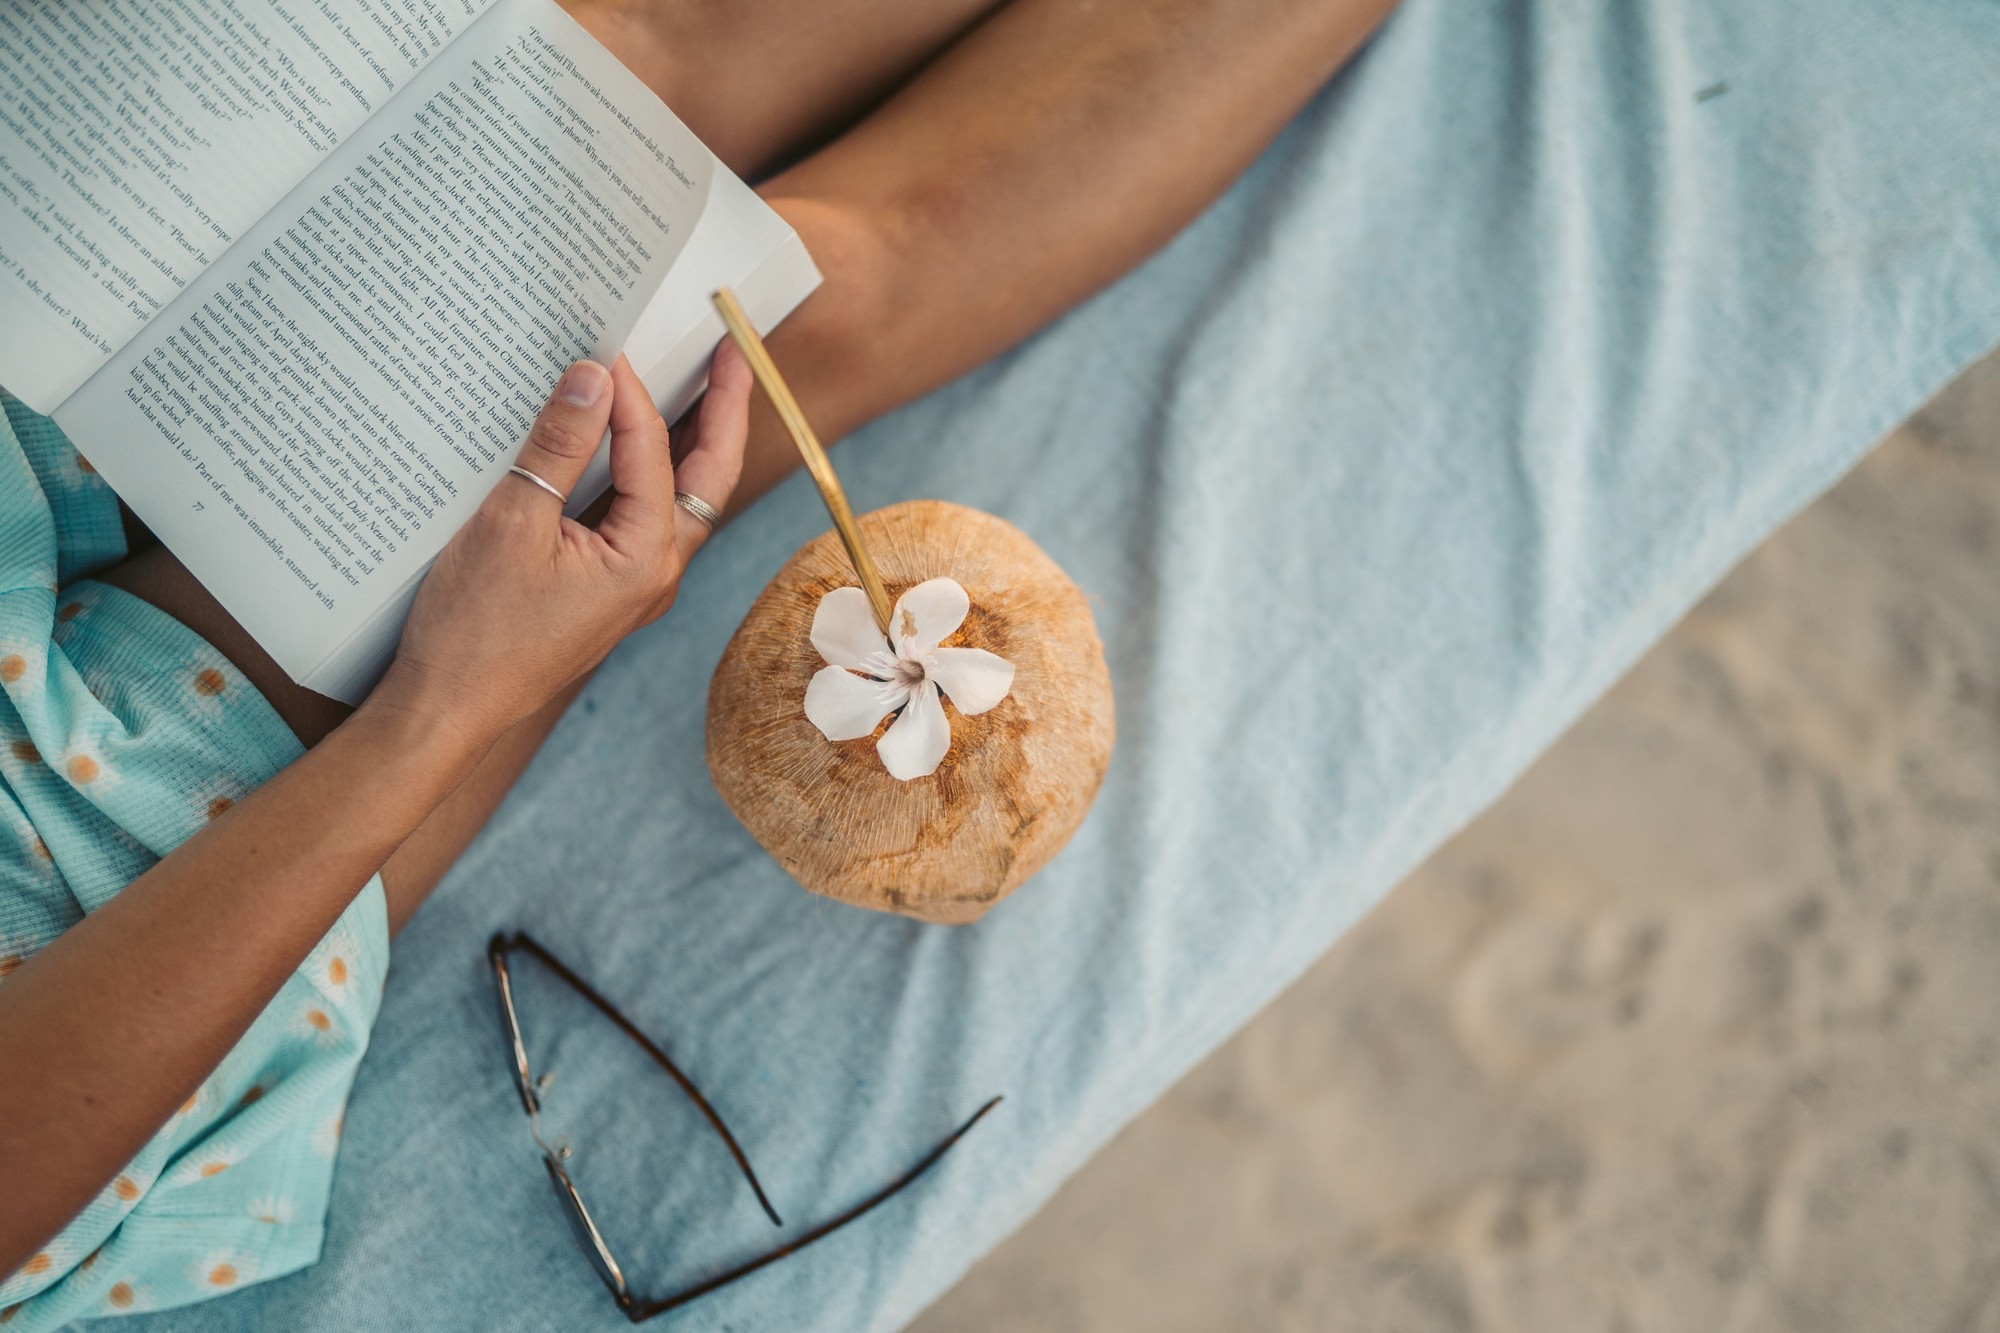 Woman reading book on beach with cookie nearby. June Medium Library Sandra Pawula